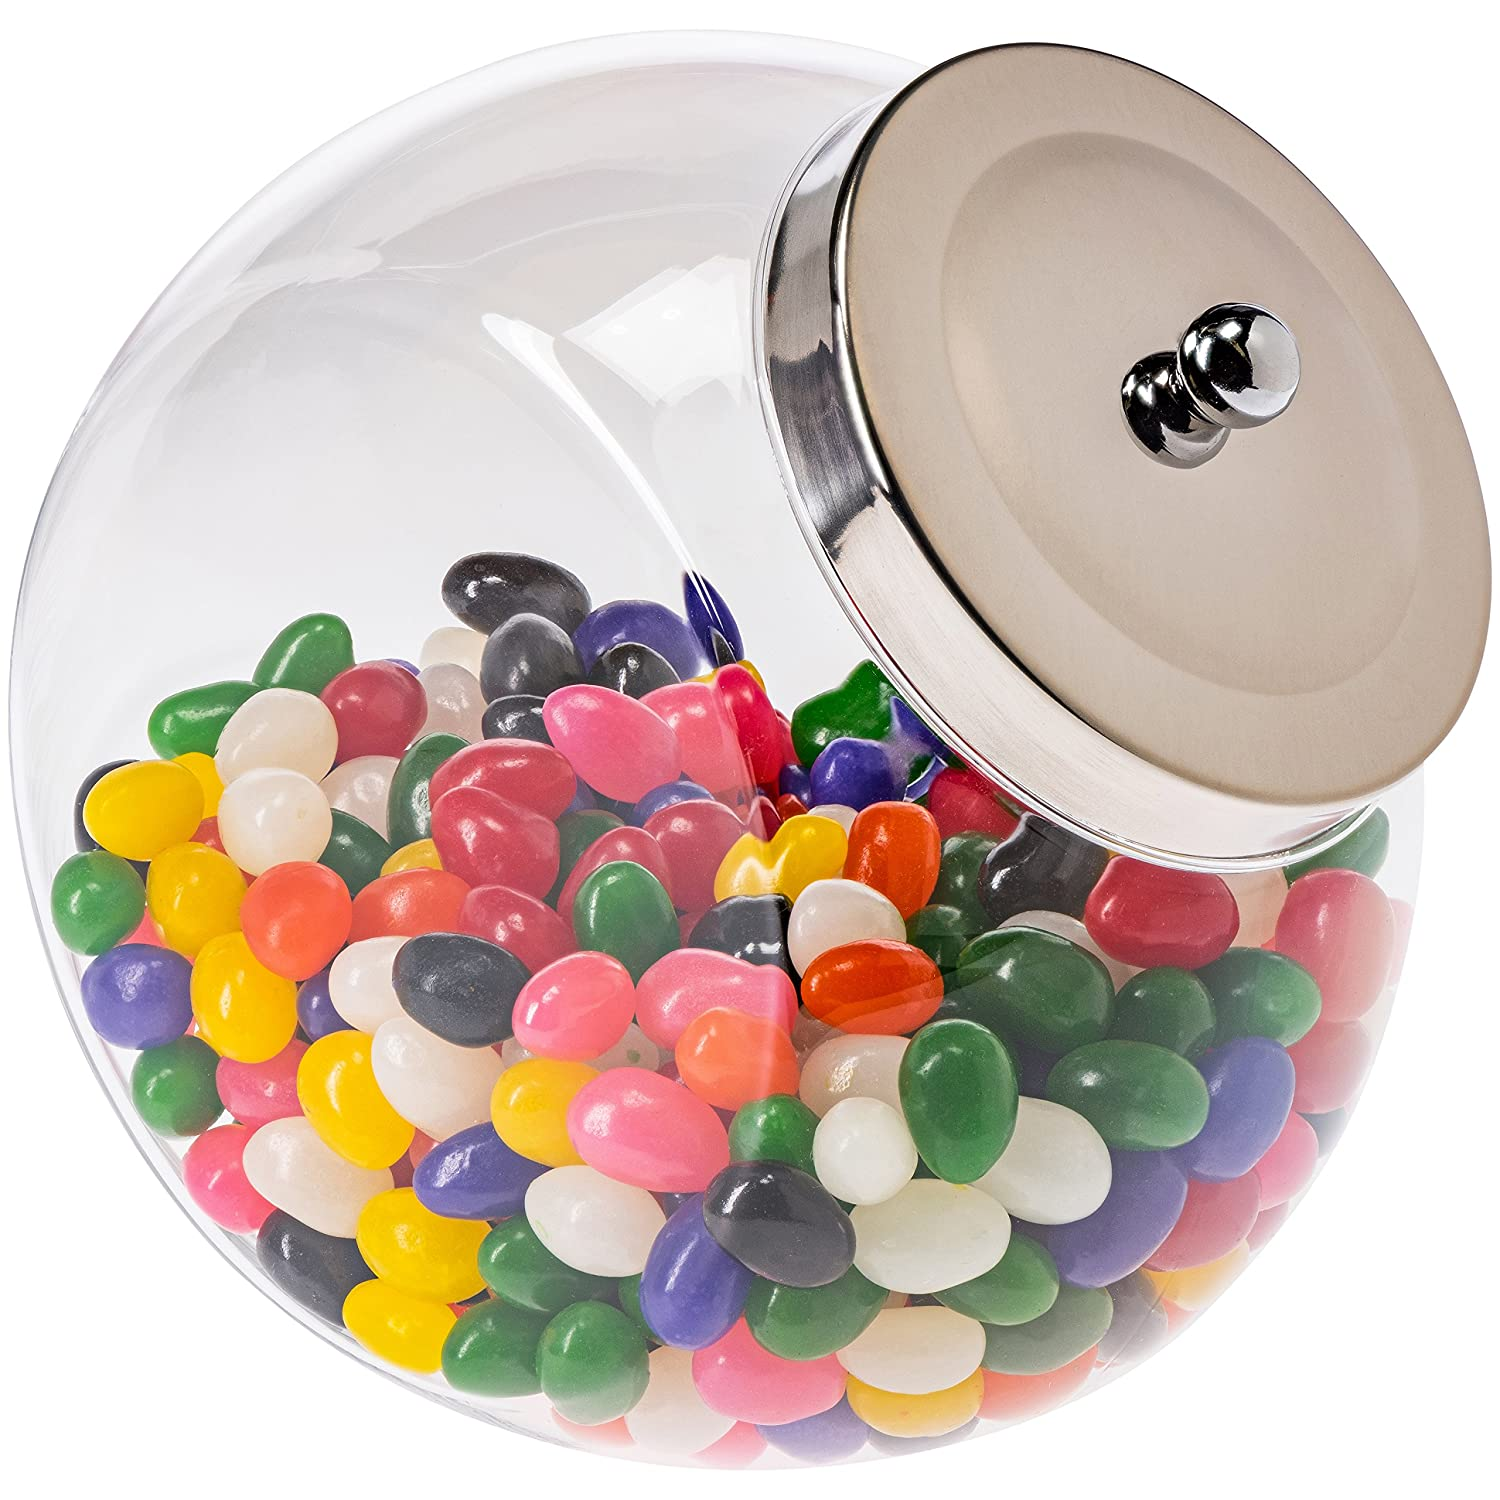 Penny Candy Jar with Lid - Acrylic Penny Candy Jar Tablesto